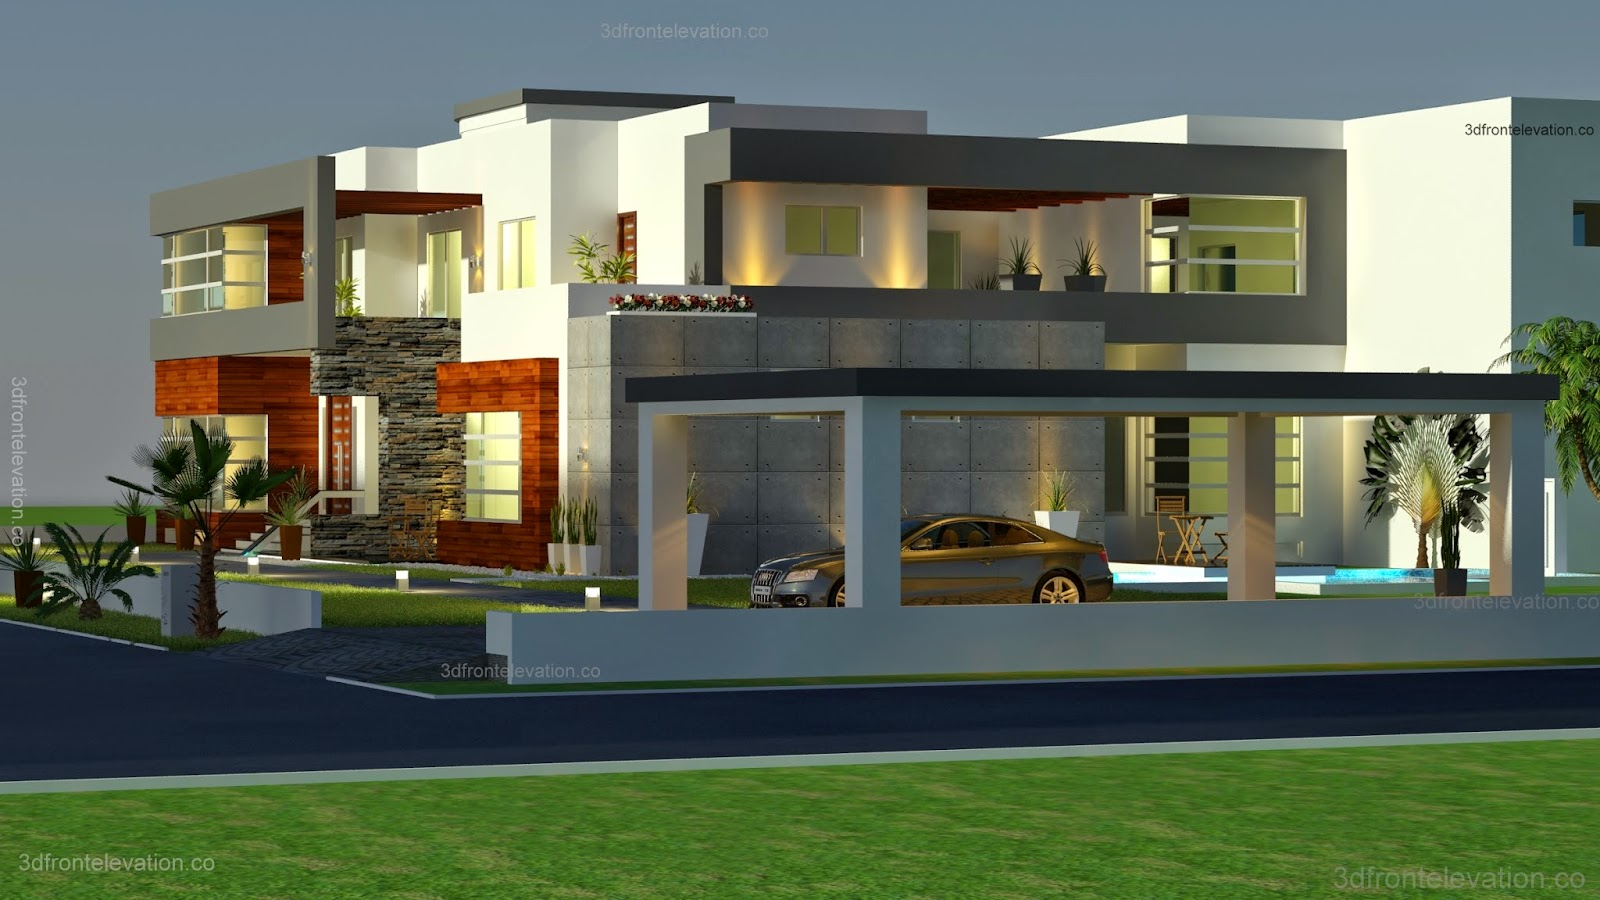 House plans and design modern bungalow house plans canada for Modern home plans canada